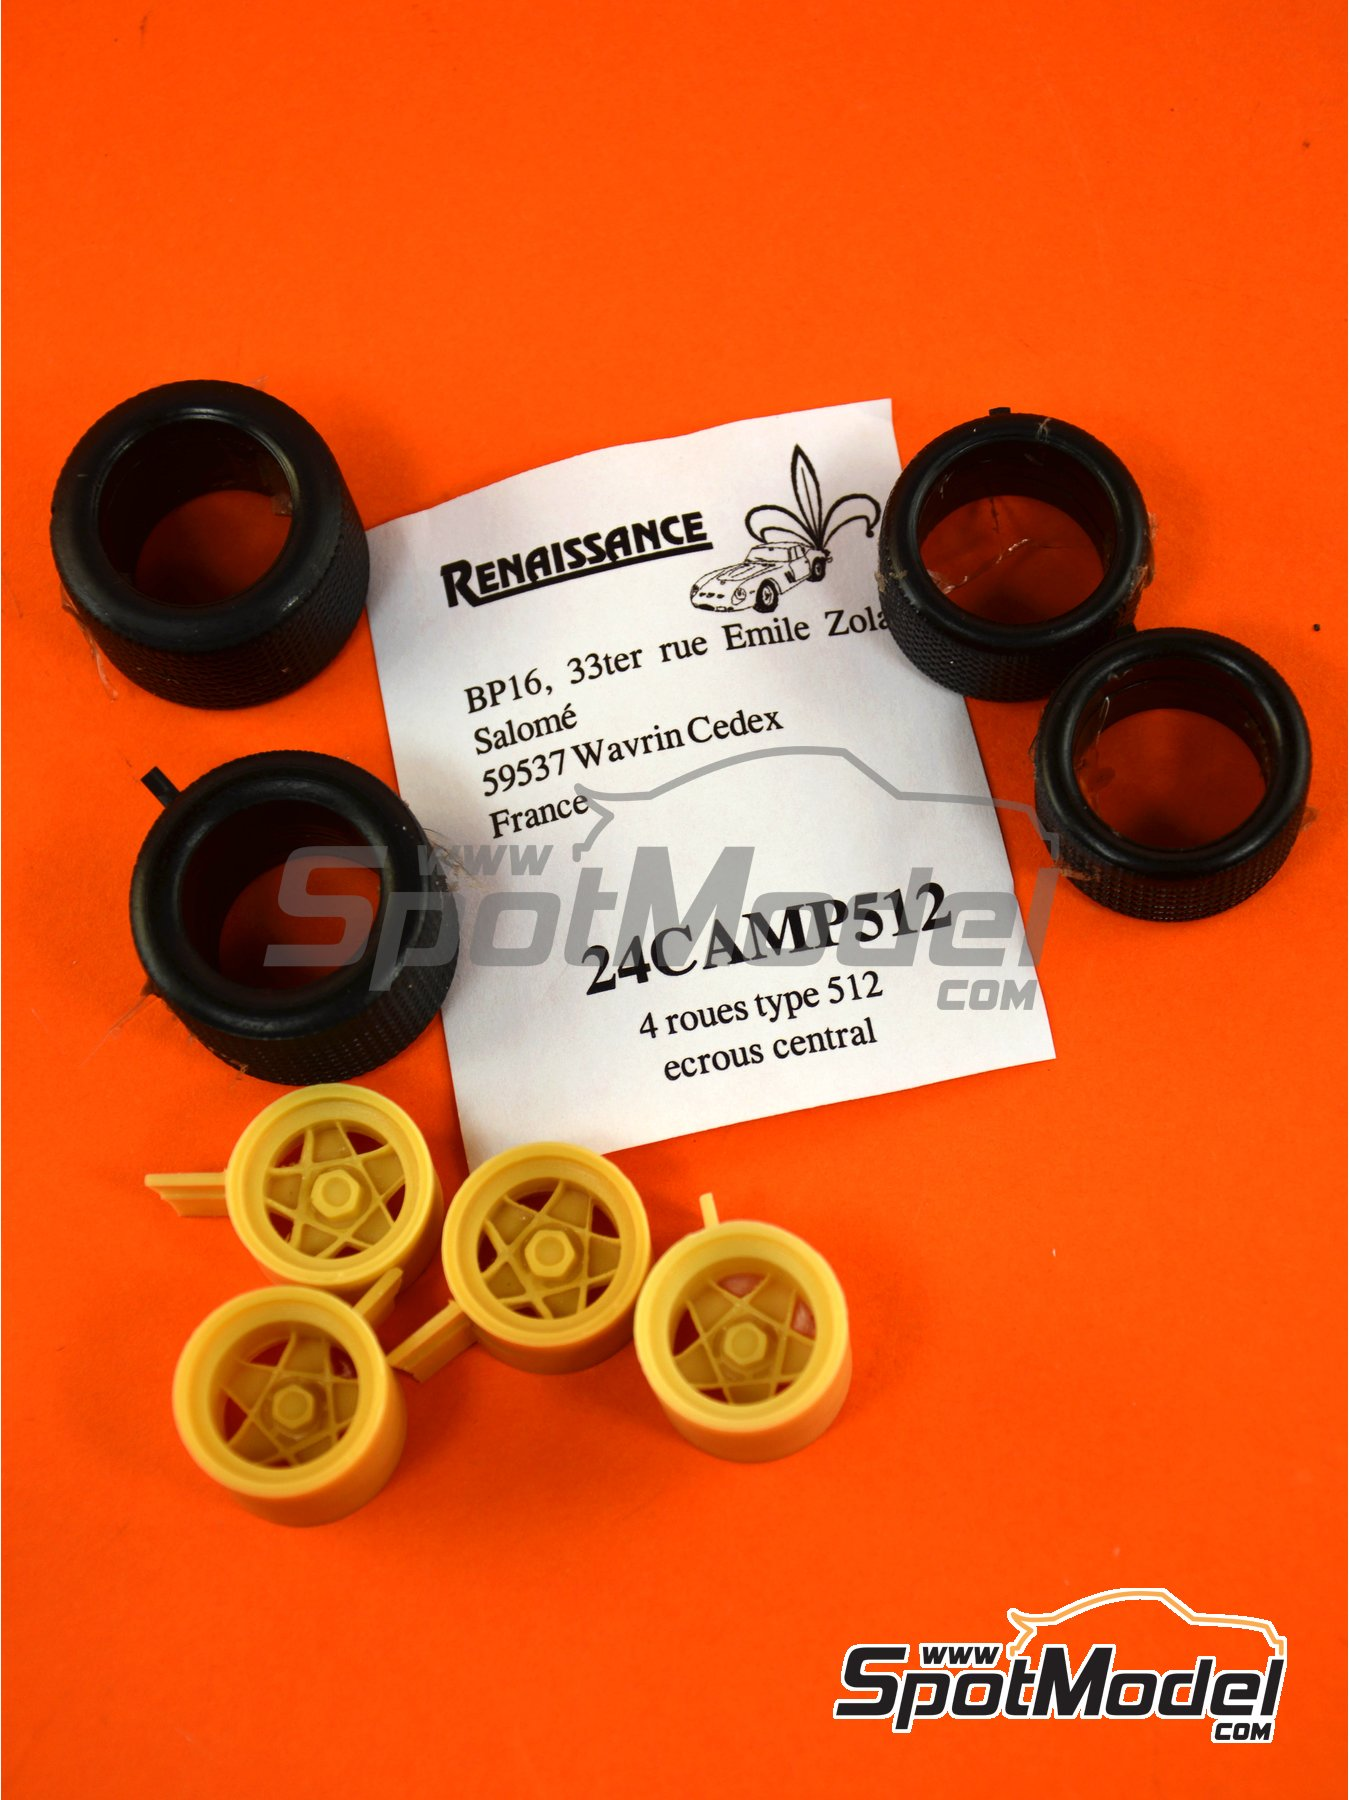 Campagnolo 15 inches | Rims and tyres set in 1/24 scale manufactured by Renaissance Models (ref. 24CAMP512) image